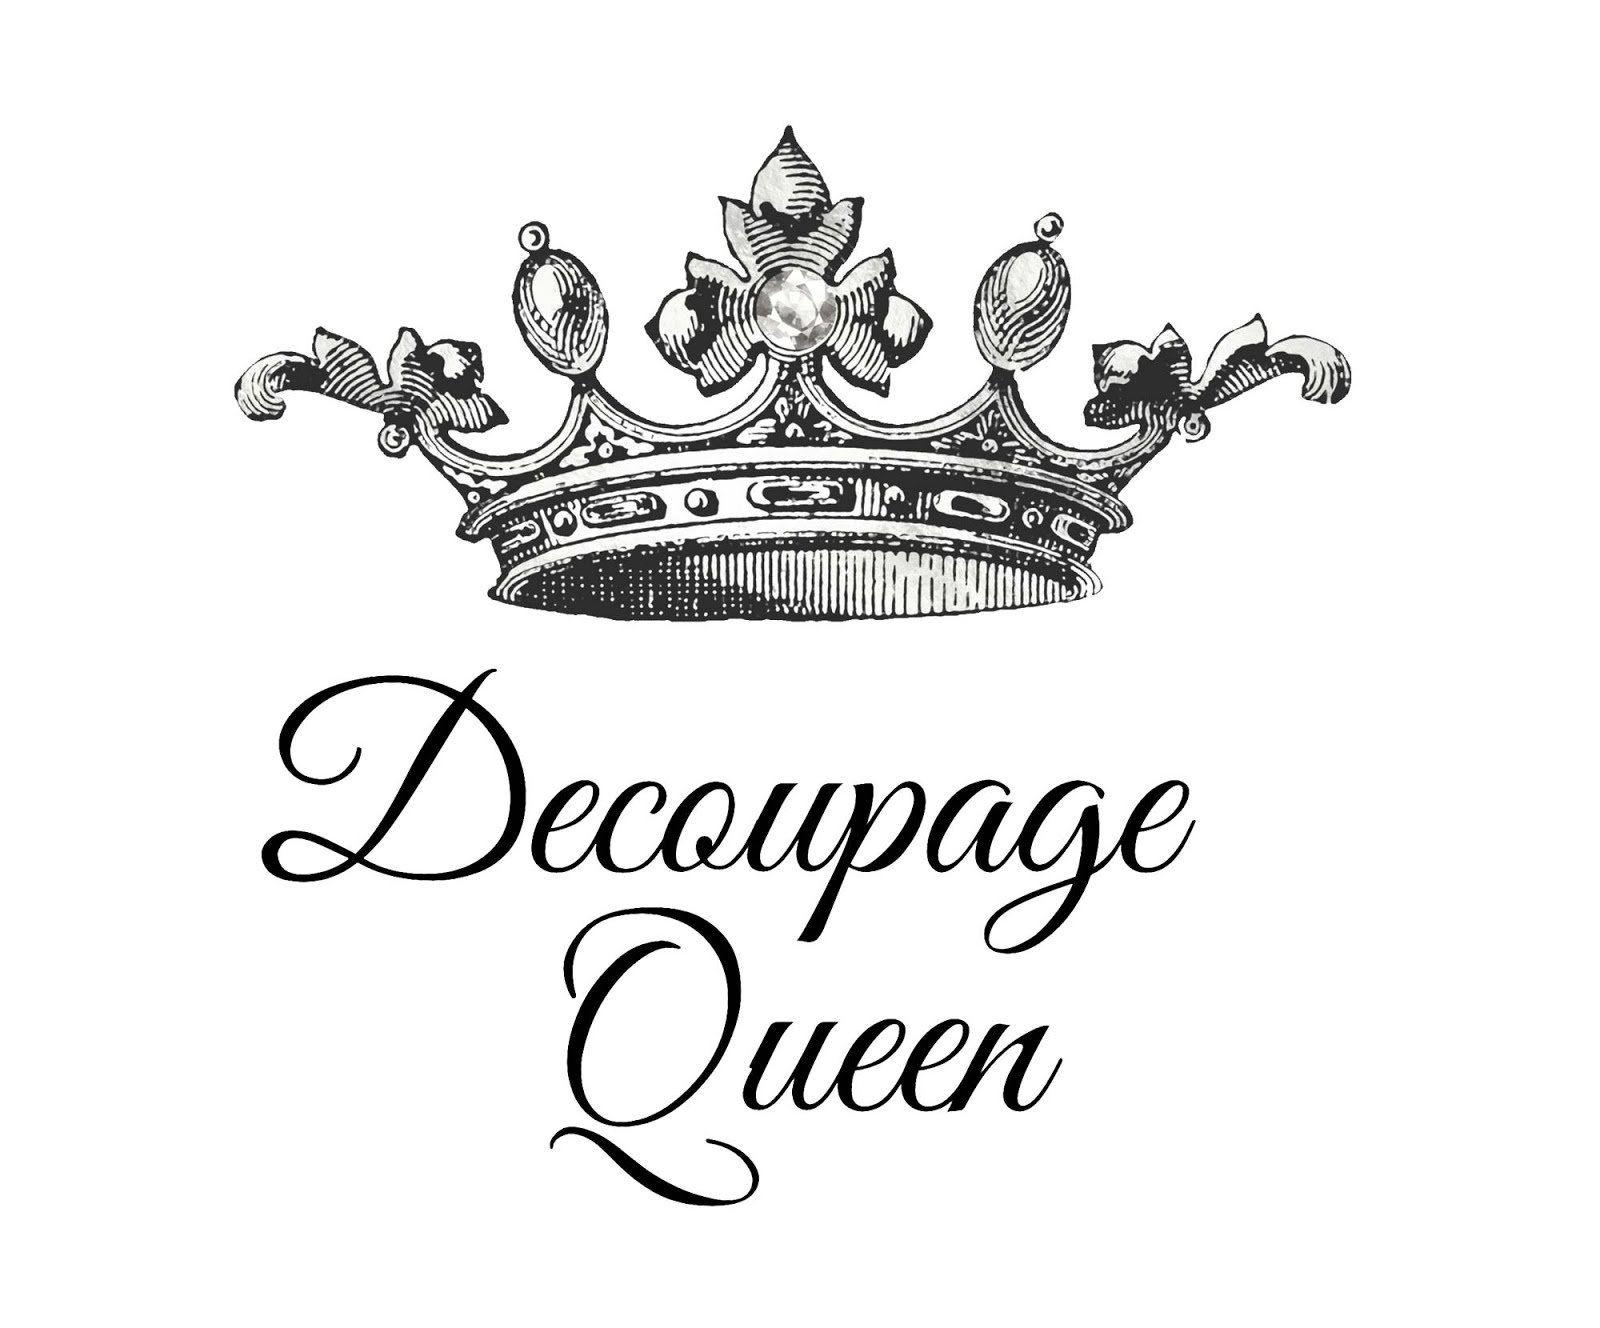 Decoupage Queen